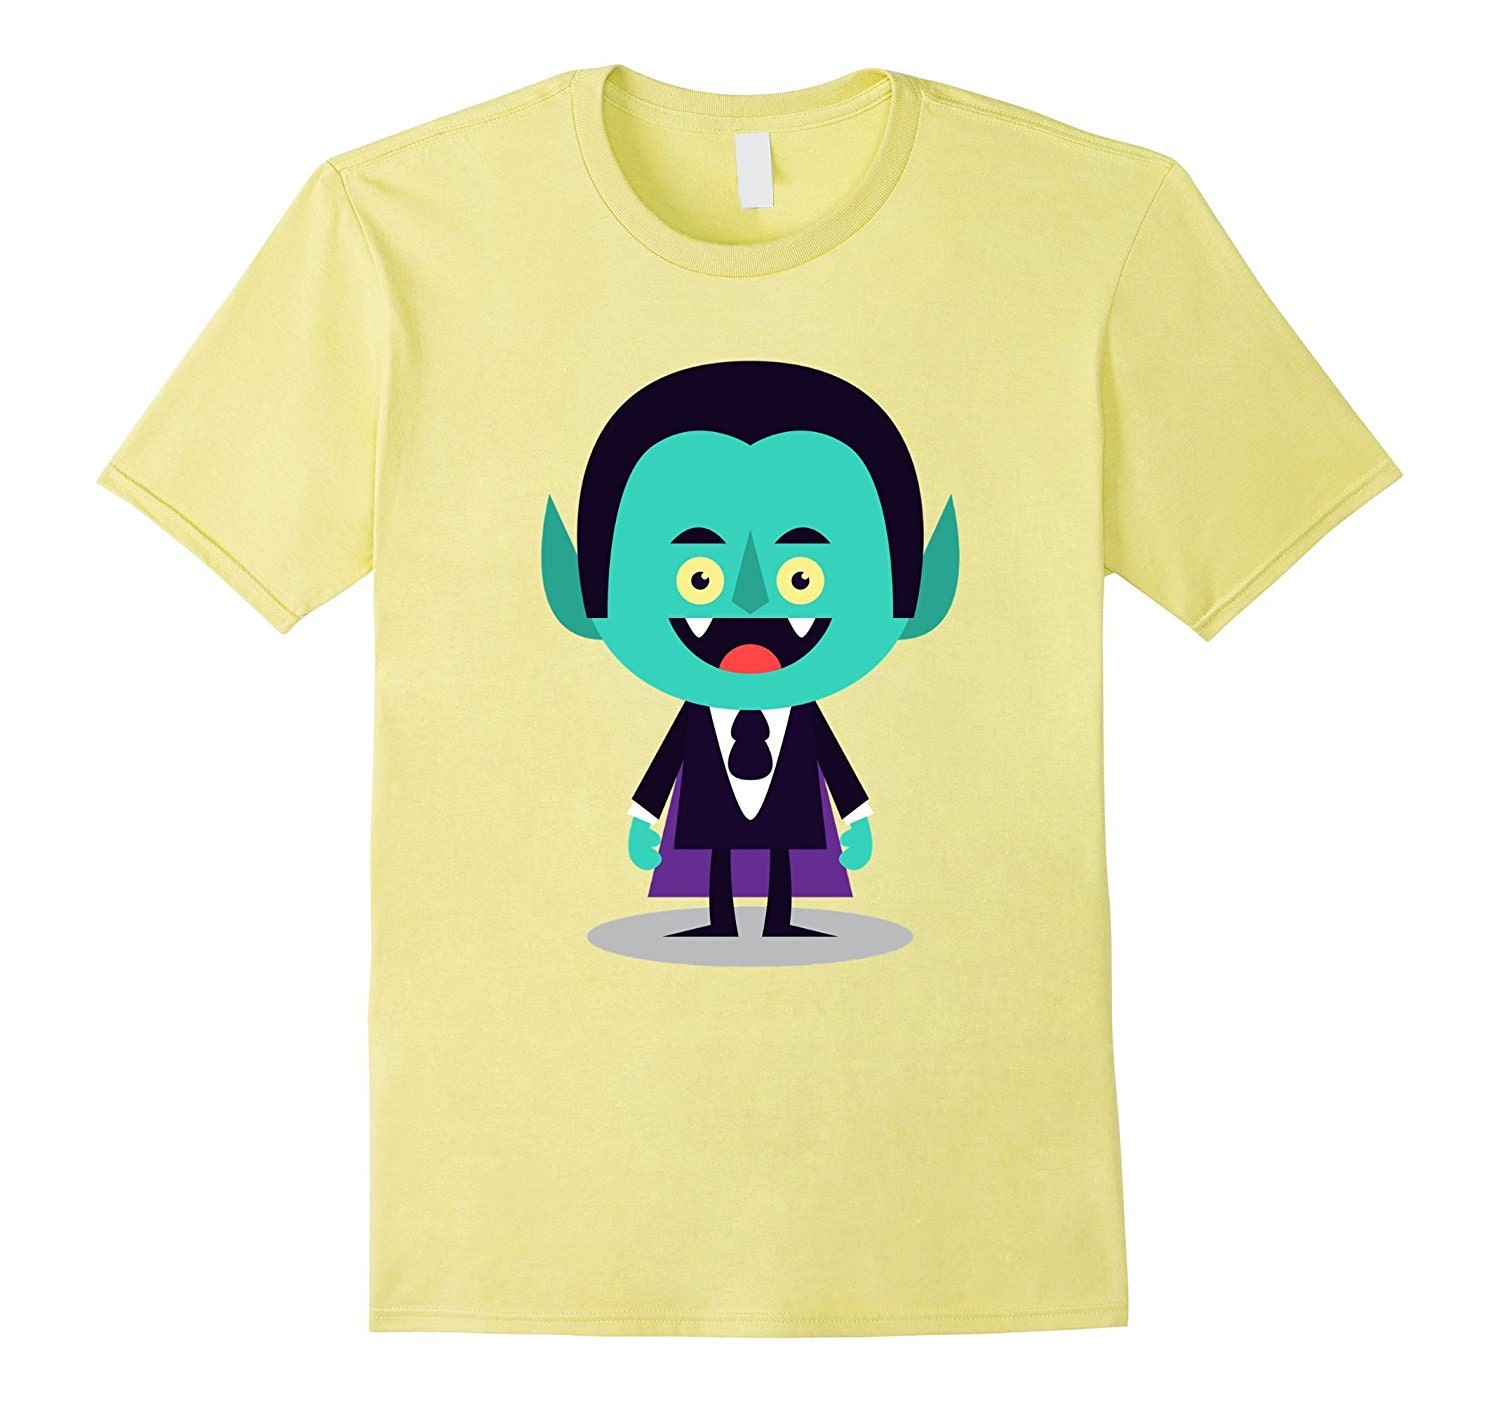 T Shirts Cartoon Characters : Funny dracula halloween t shirt cartoon character vamp